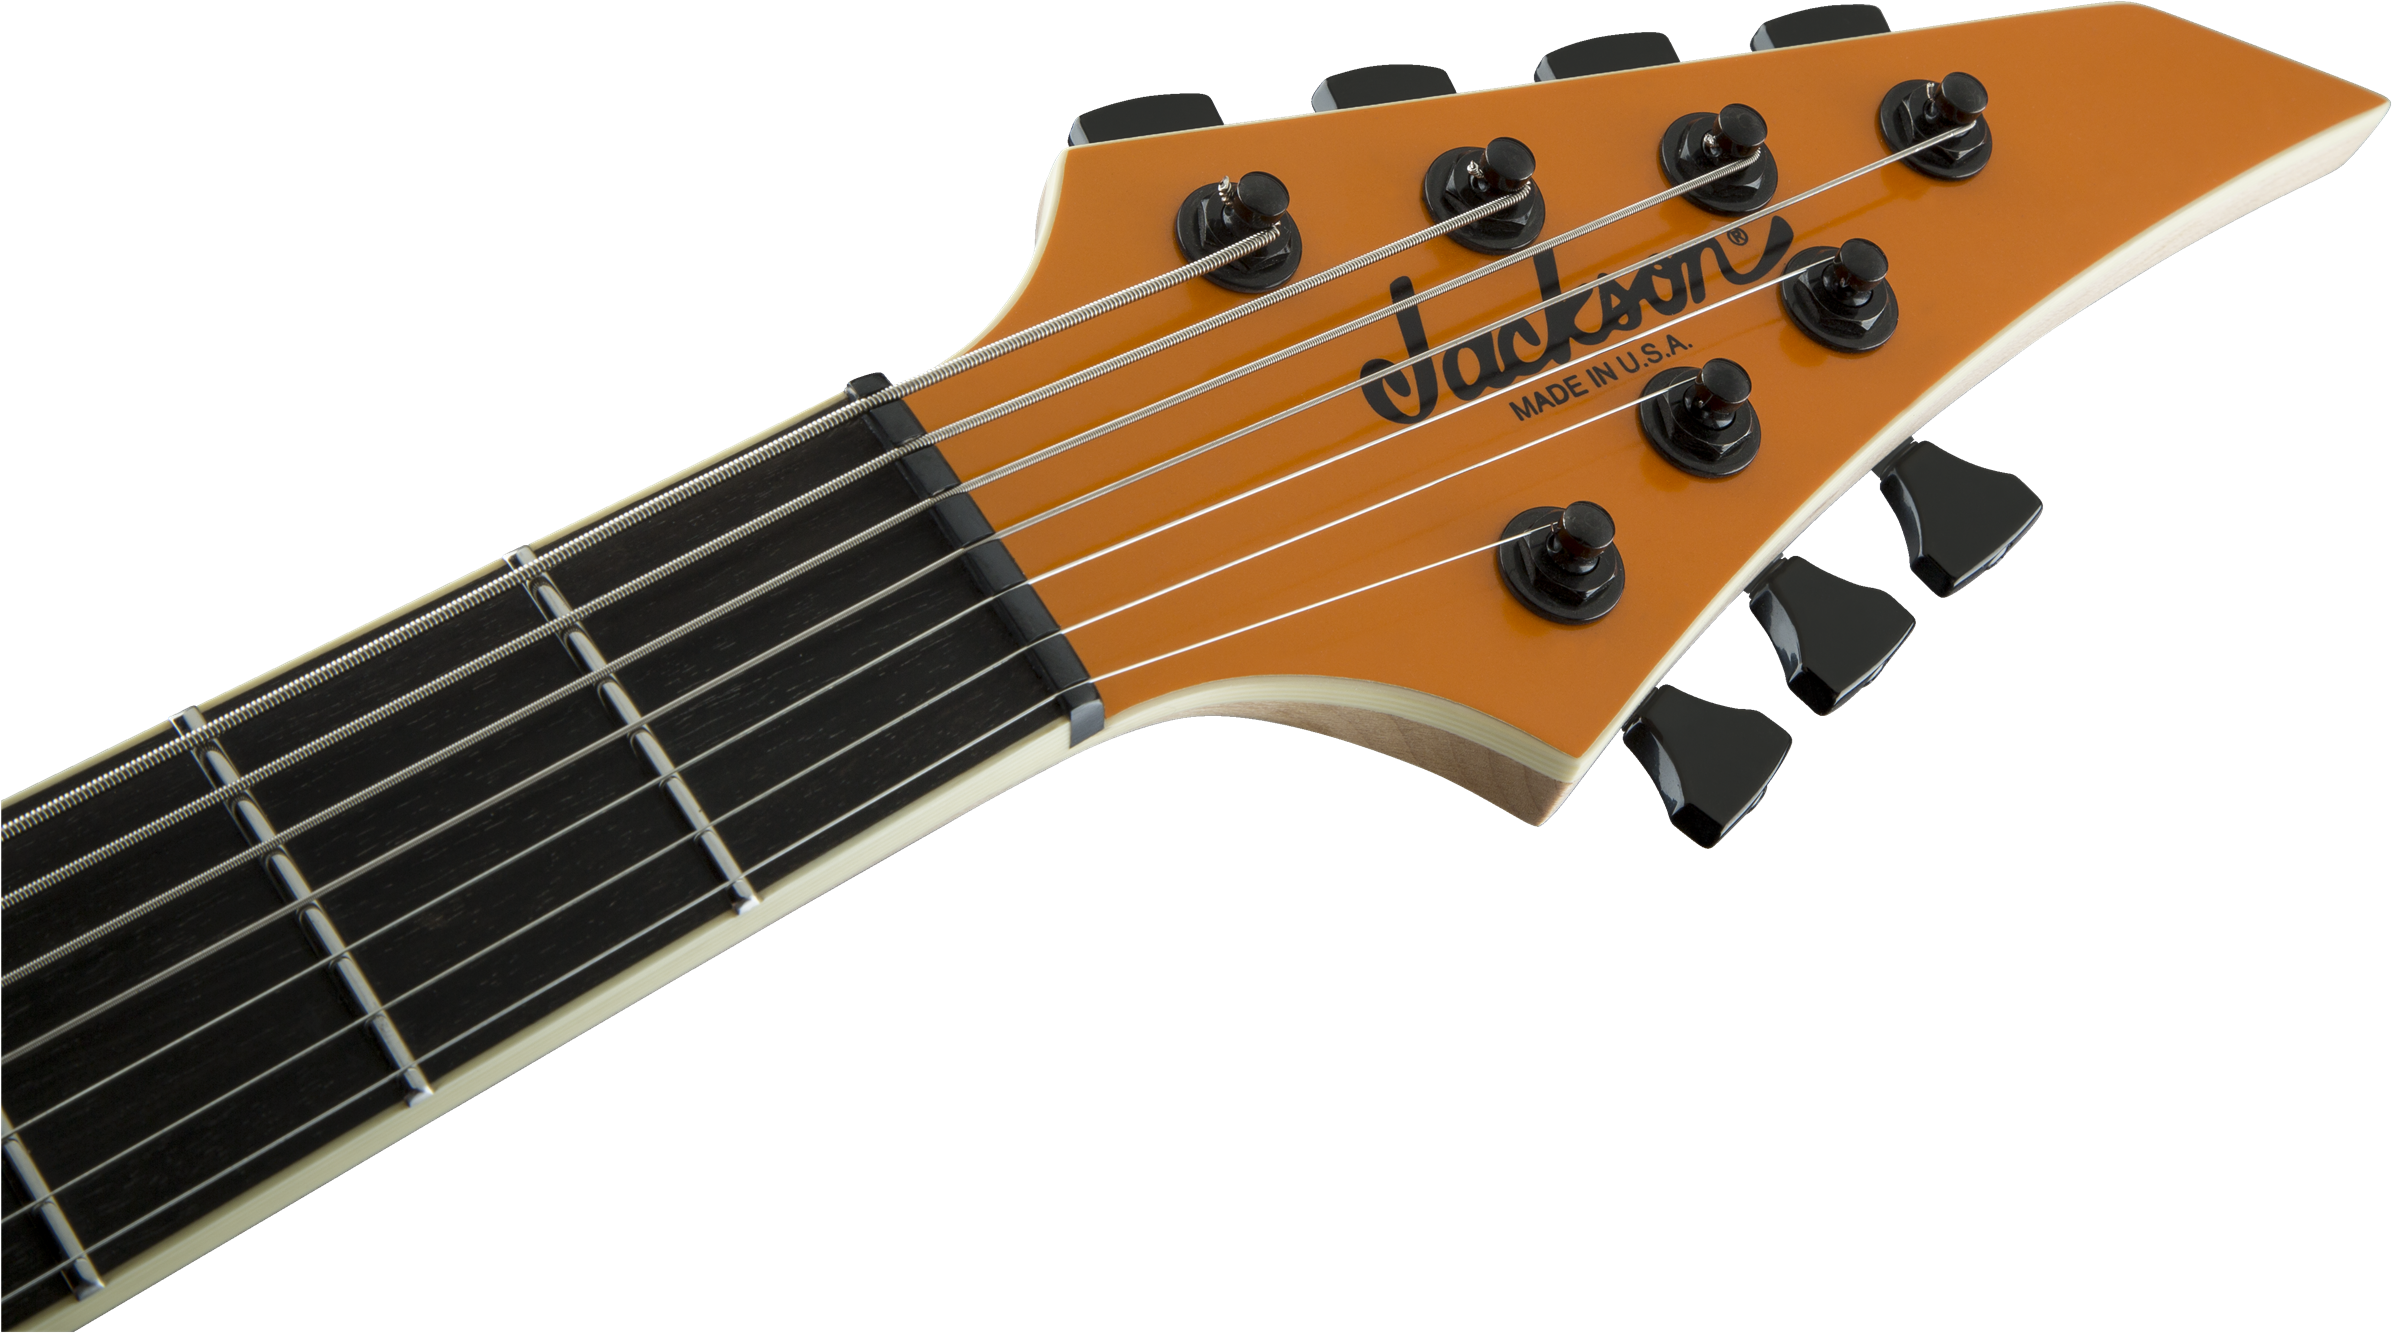 Wiring Diagram For Jackson Warrior Building A Soloist Juggernaut Usa Signature Limited Edition Misha Mansoor V Star 650 Classic